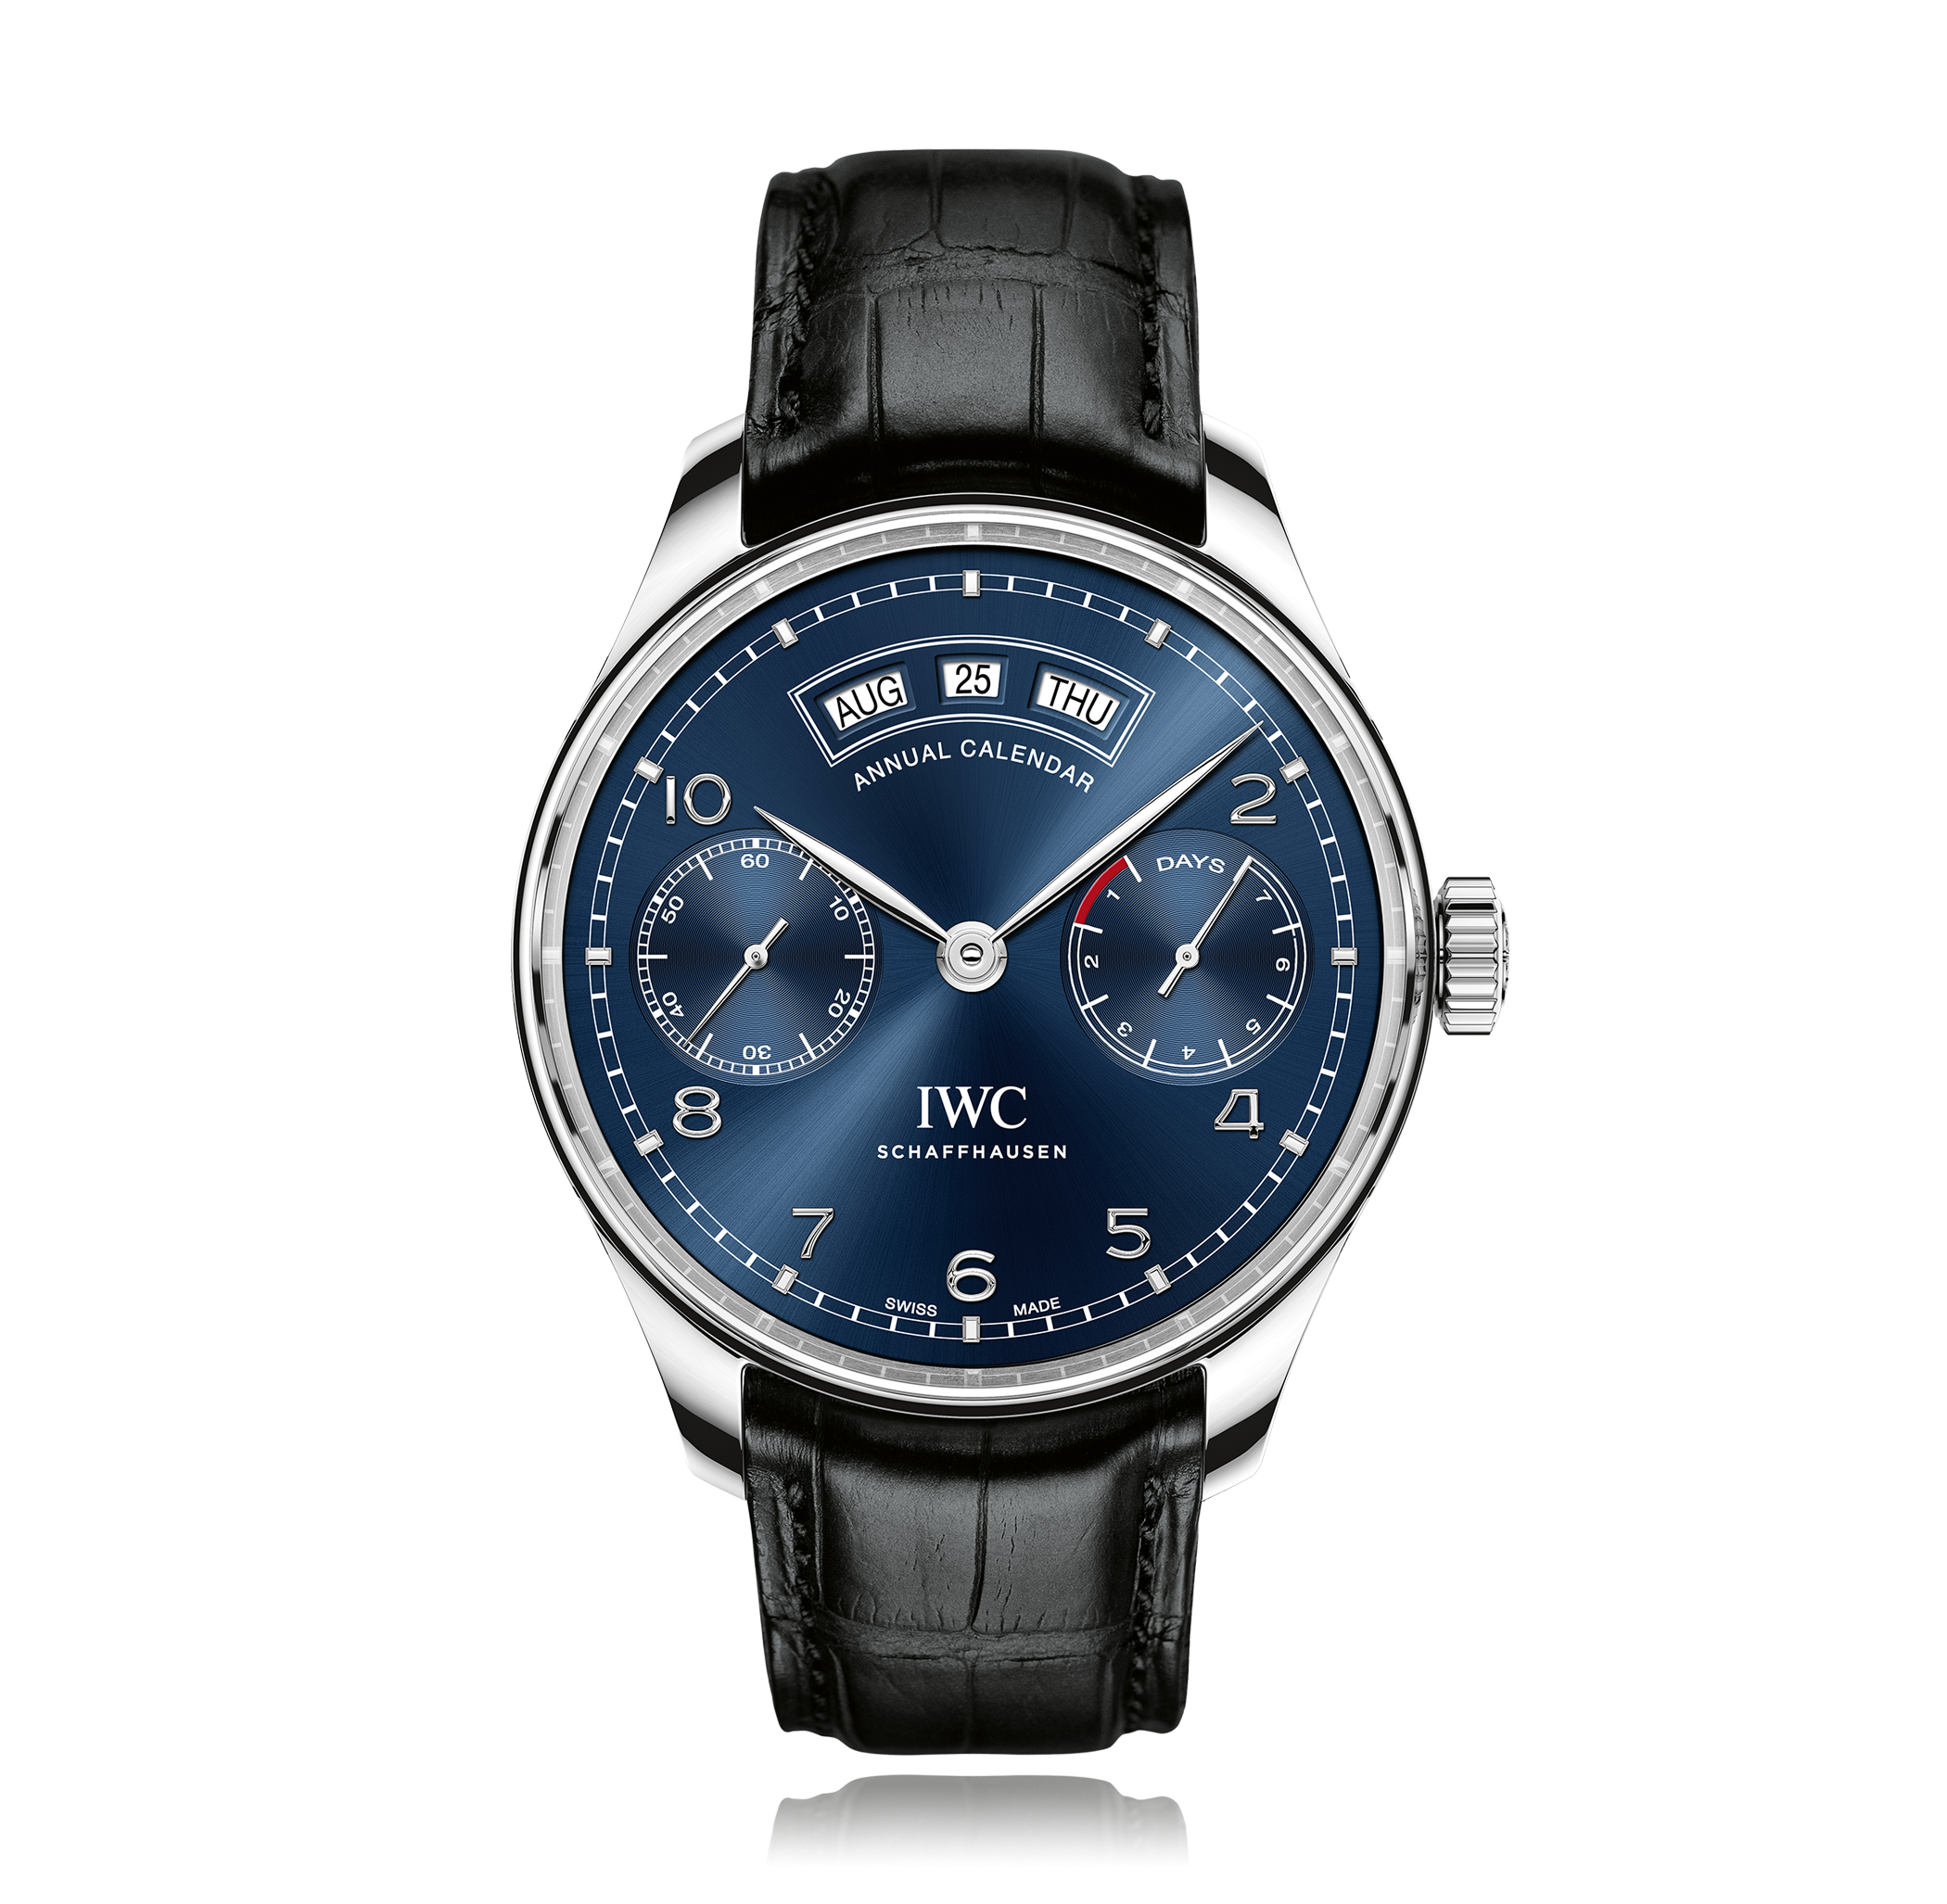 Model IWC Portugieser  Annual Calendar Blue Dial Mens Watch IW503502  Functions Swiss-made, automatic IWC-manufactured calibre 52850, 7-day power reserve, small hacking seconds at 9 o'clock, annual calendar with displays for the date, day and month, sapphire crystal glass and water resistant to 30 metres.  Features The new Portugieser  Annual Calendar brings together two firsts for IWC and three masterstrokes of haute horlogerie in a single case: the newly developed annual calendar closes…